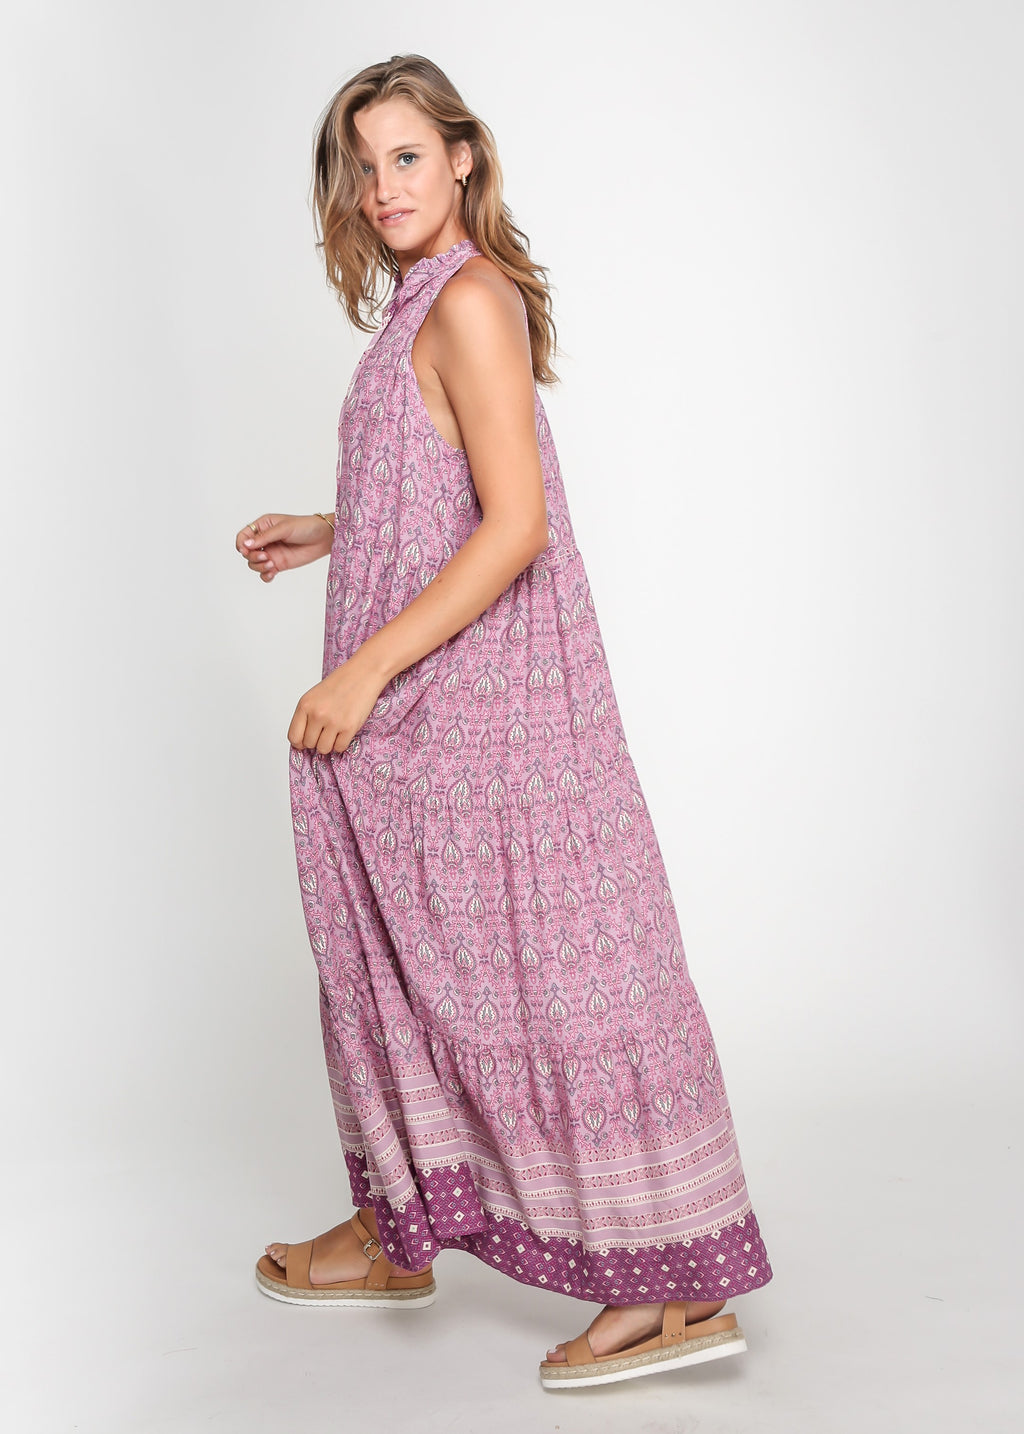 CHELSY DRESS - PURPLE PRINT - MARK DOWN MADNESS